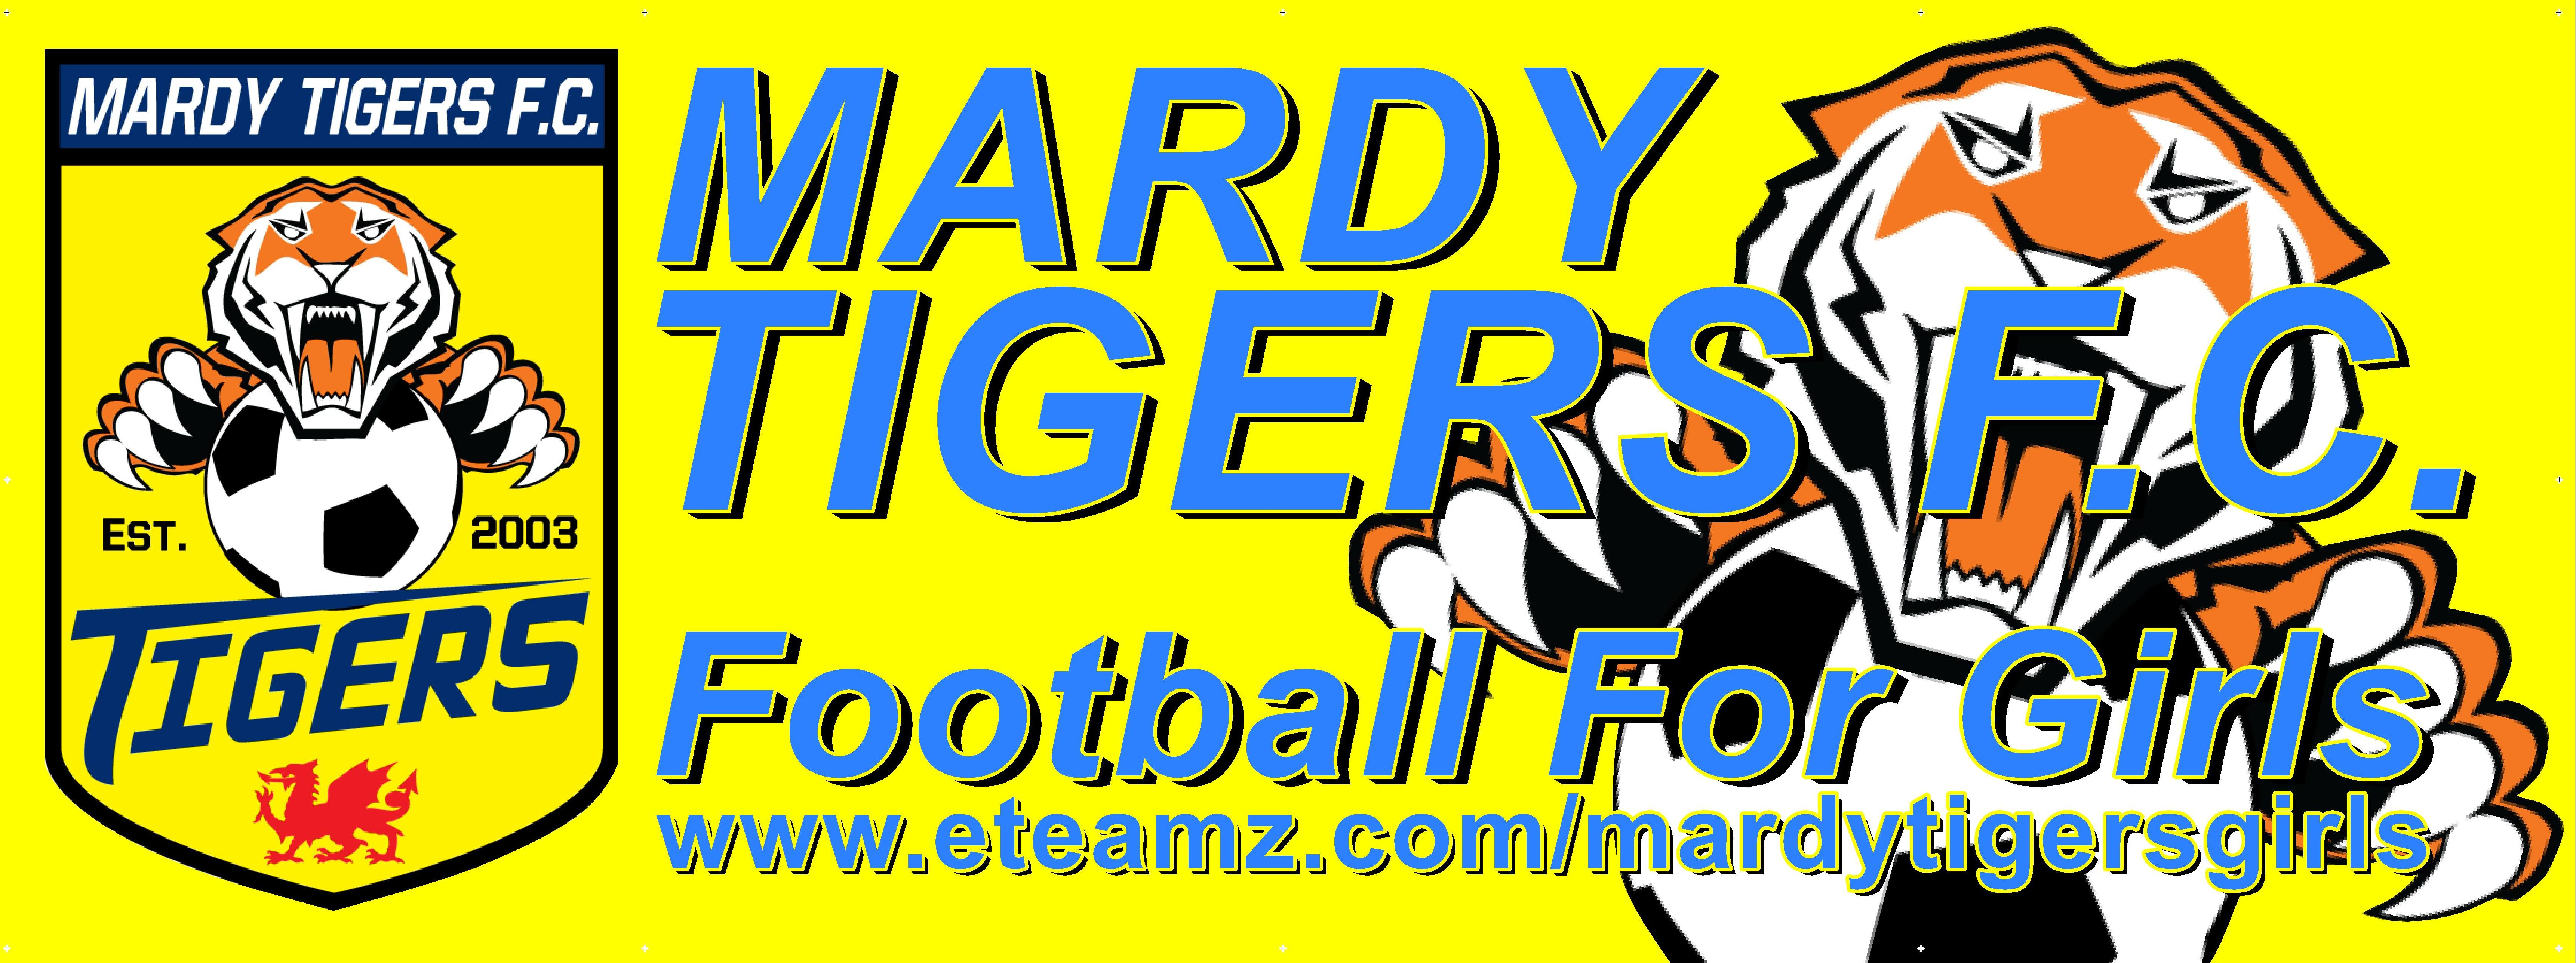 Mardy Tigers F.C.